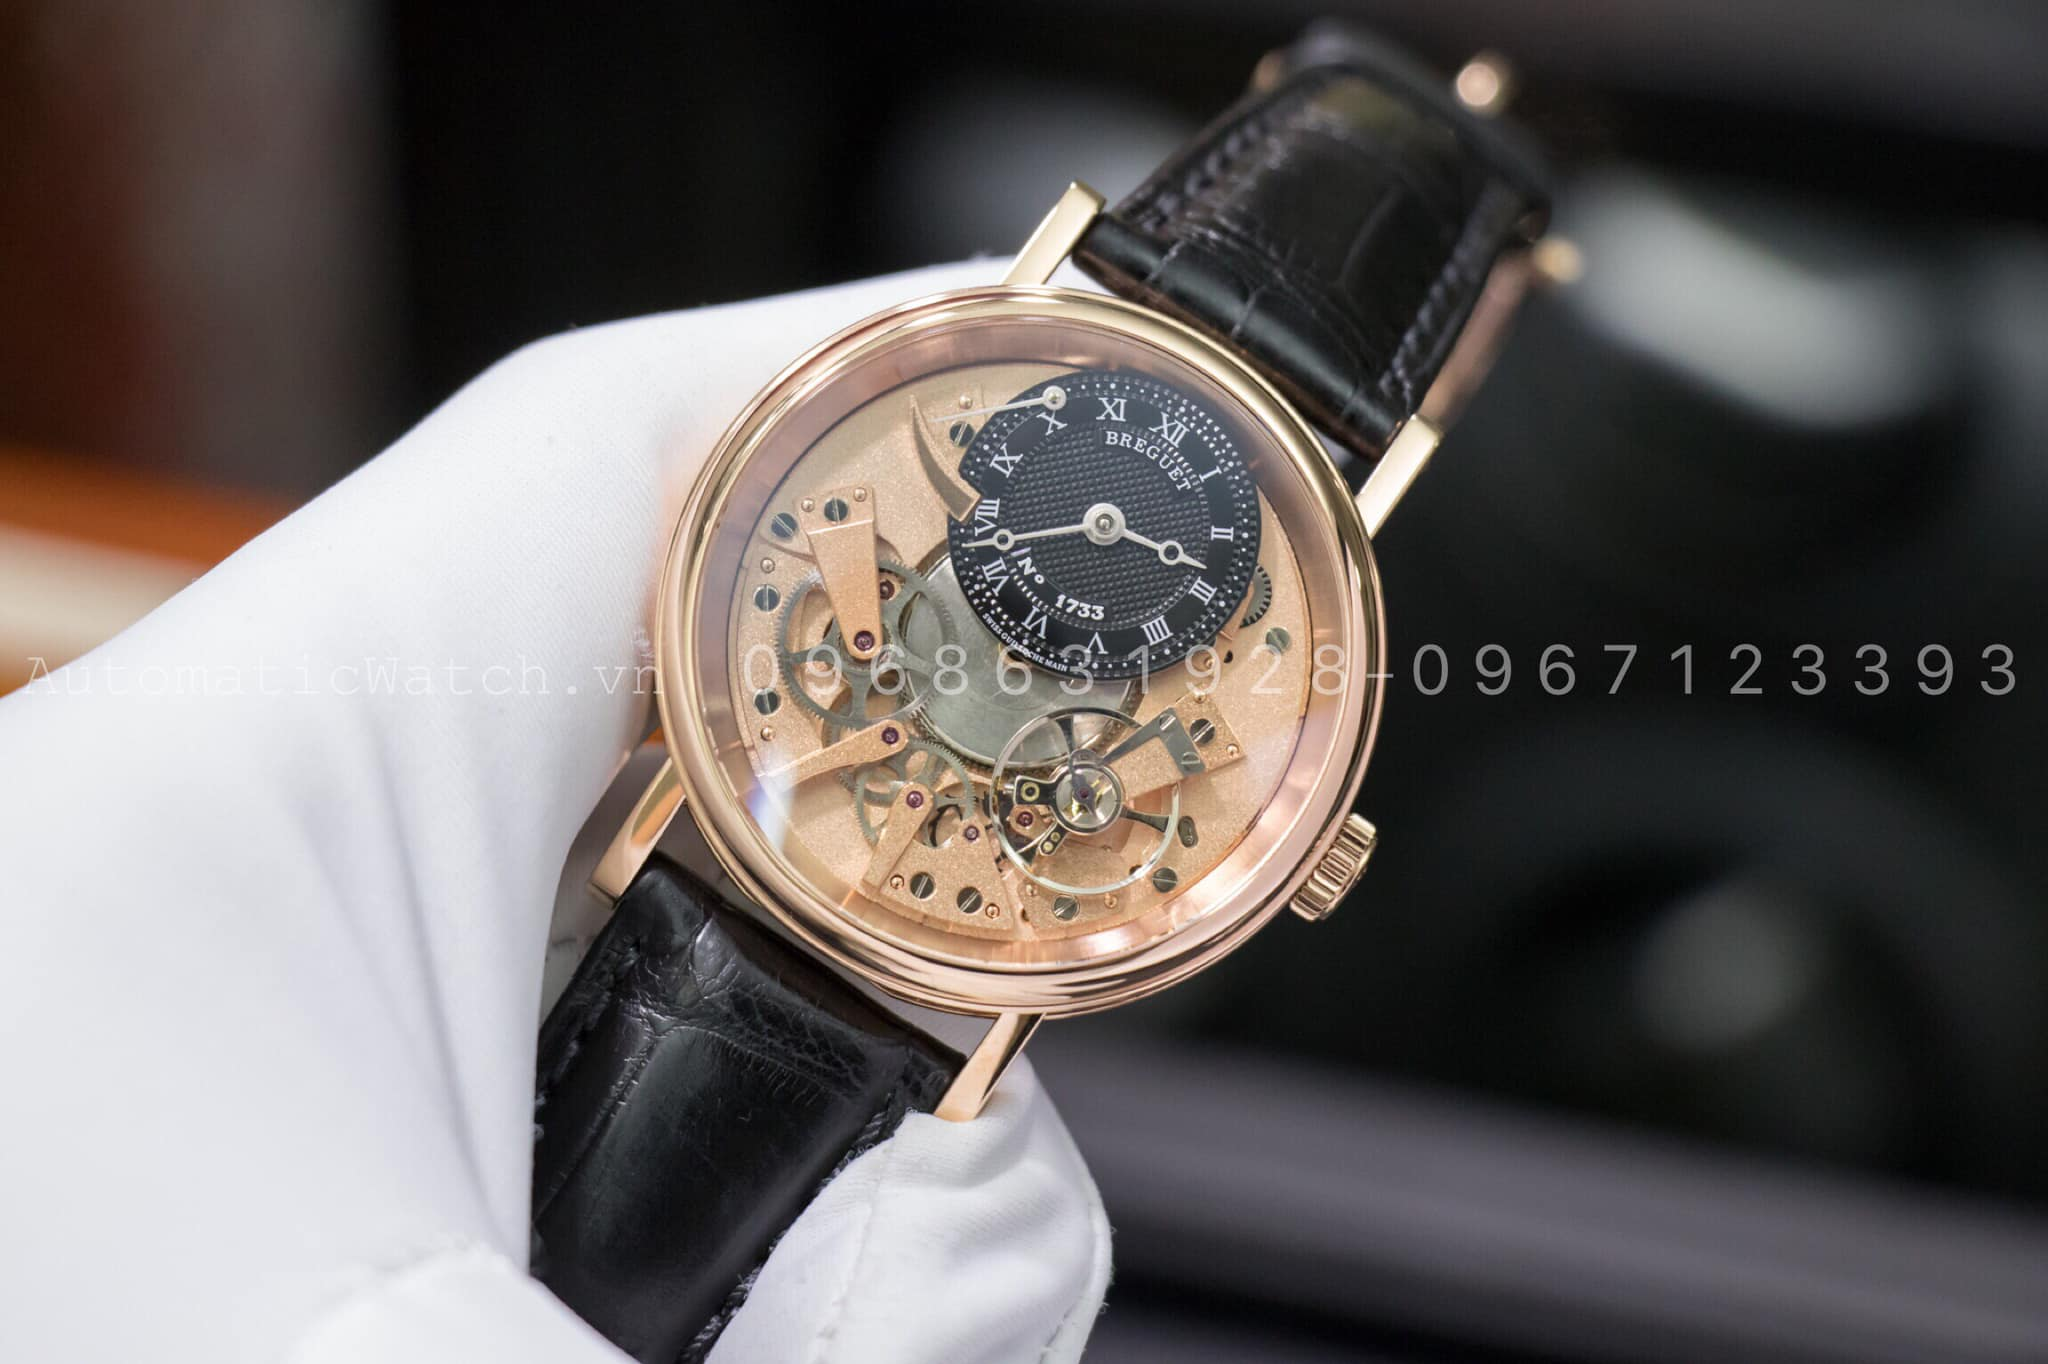 Đồng hồ  Breguet Replica Tradition 7057 Skeleton Dial Men's